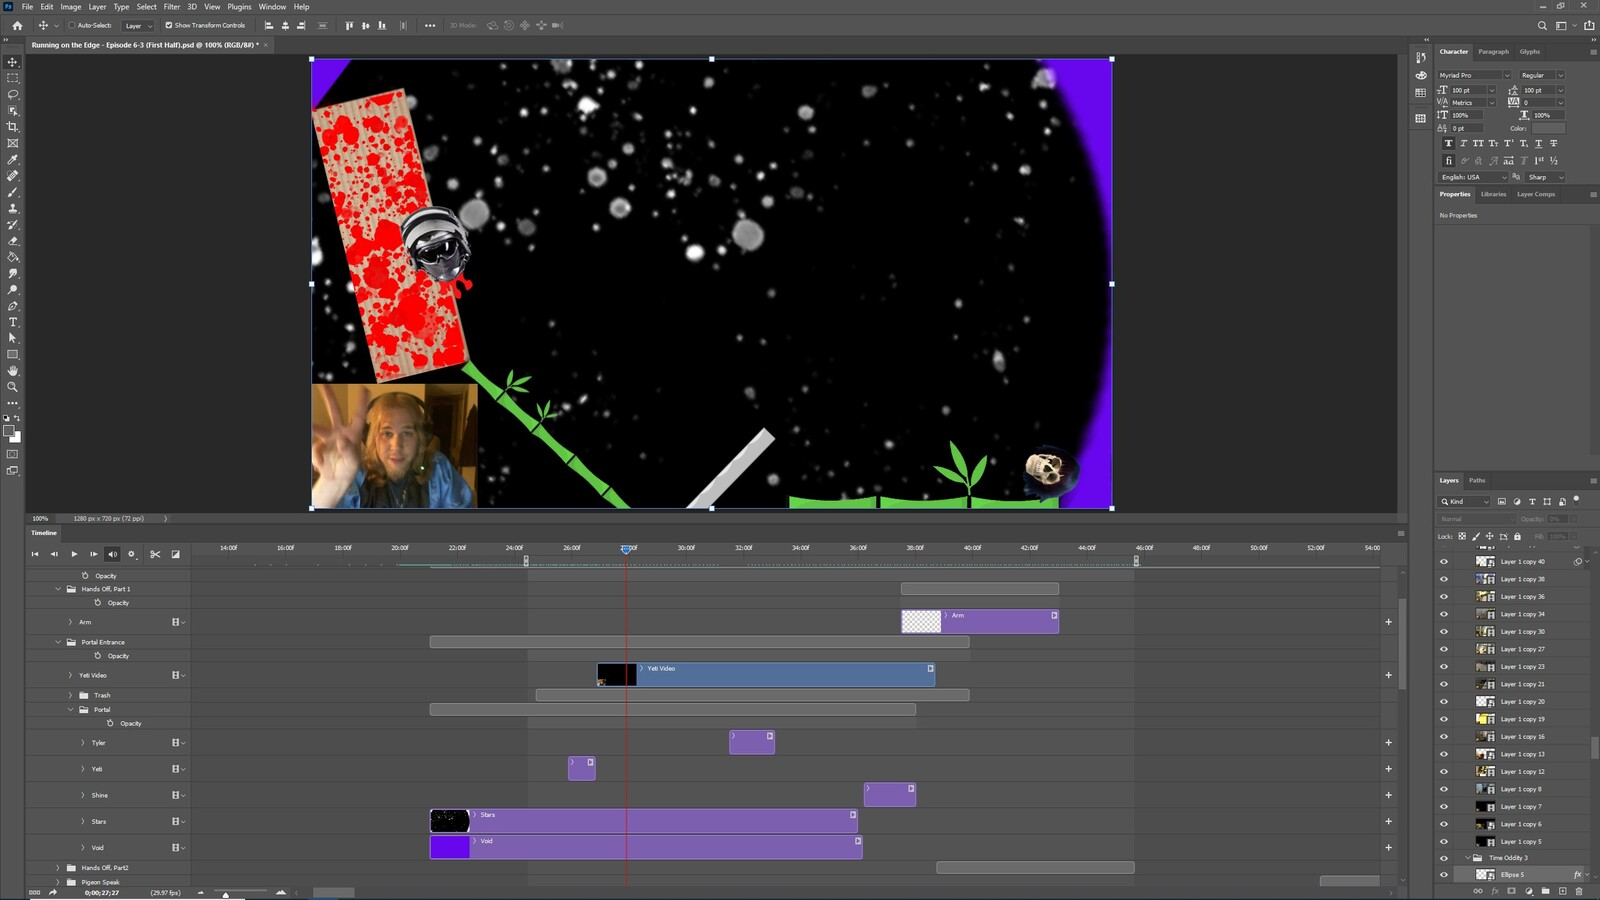 """The """"Bringing it Back"""" visual effect within Photoshop video editor"""